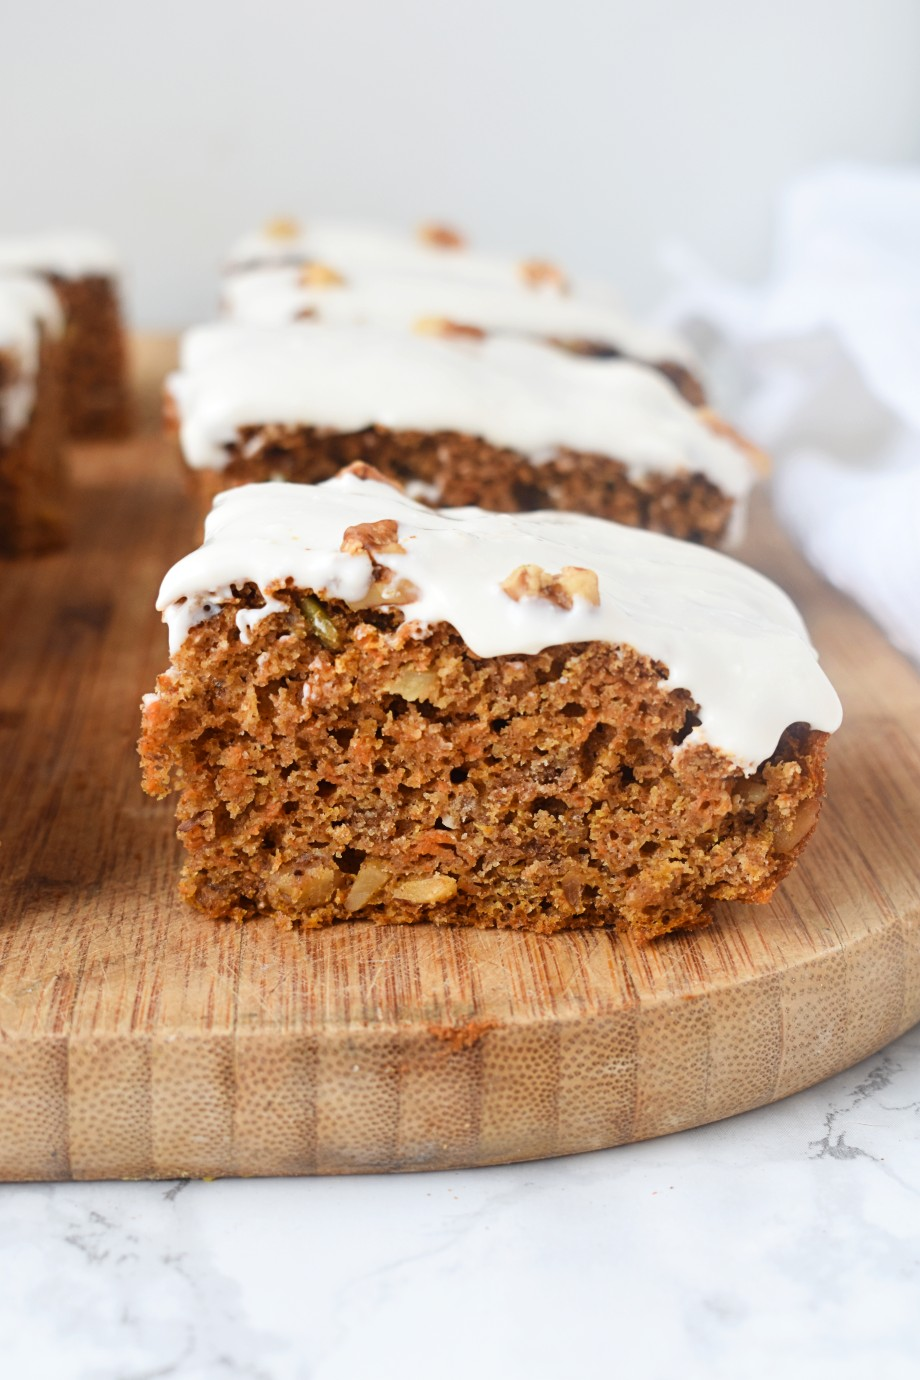 High-protein carrot cake